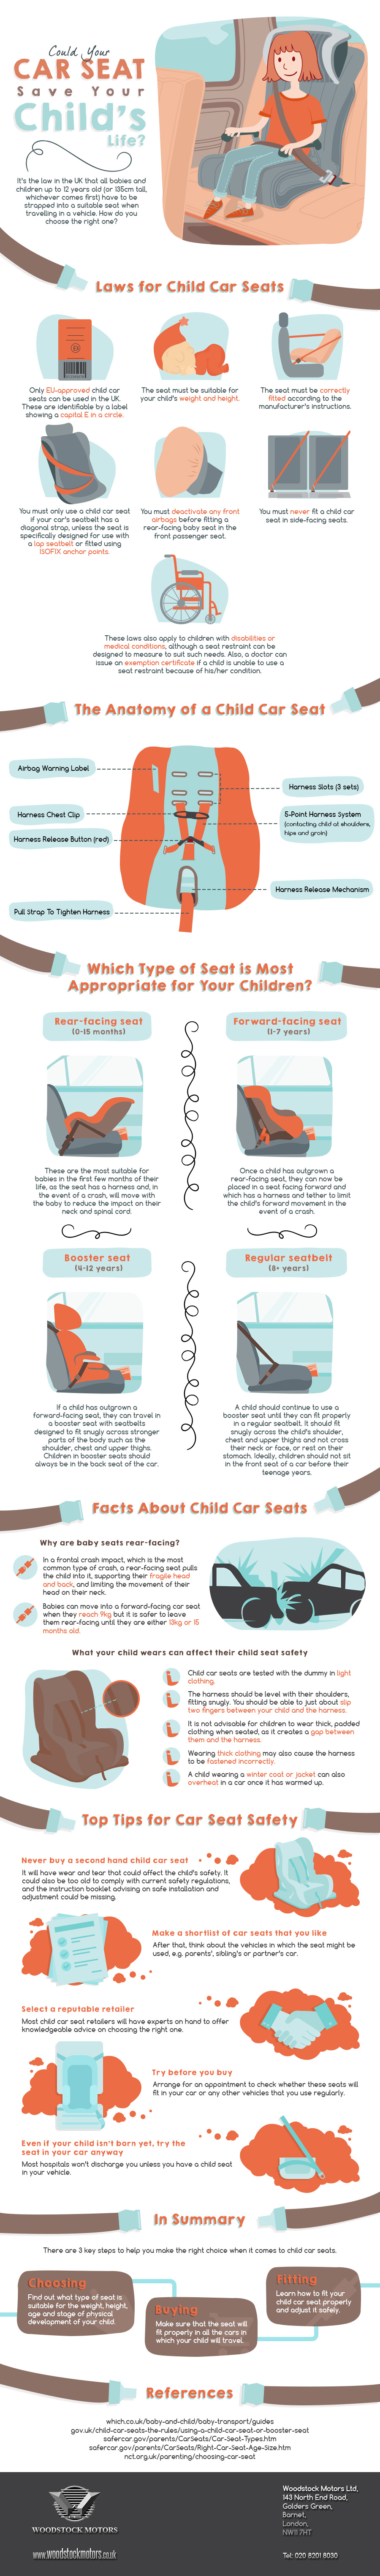 child car seats infographic